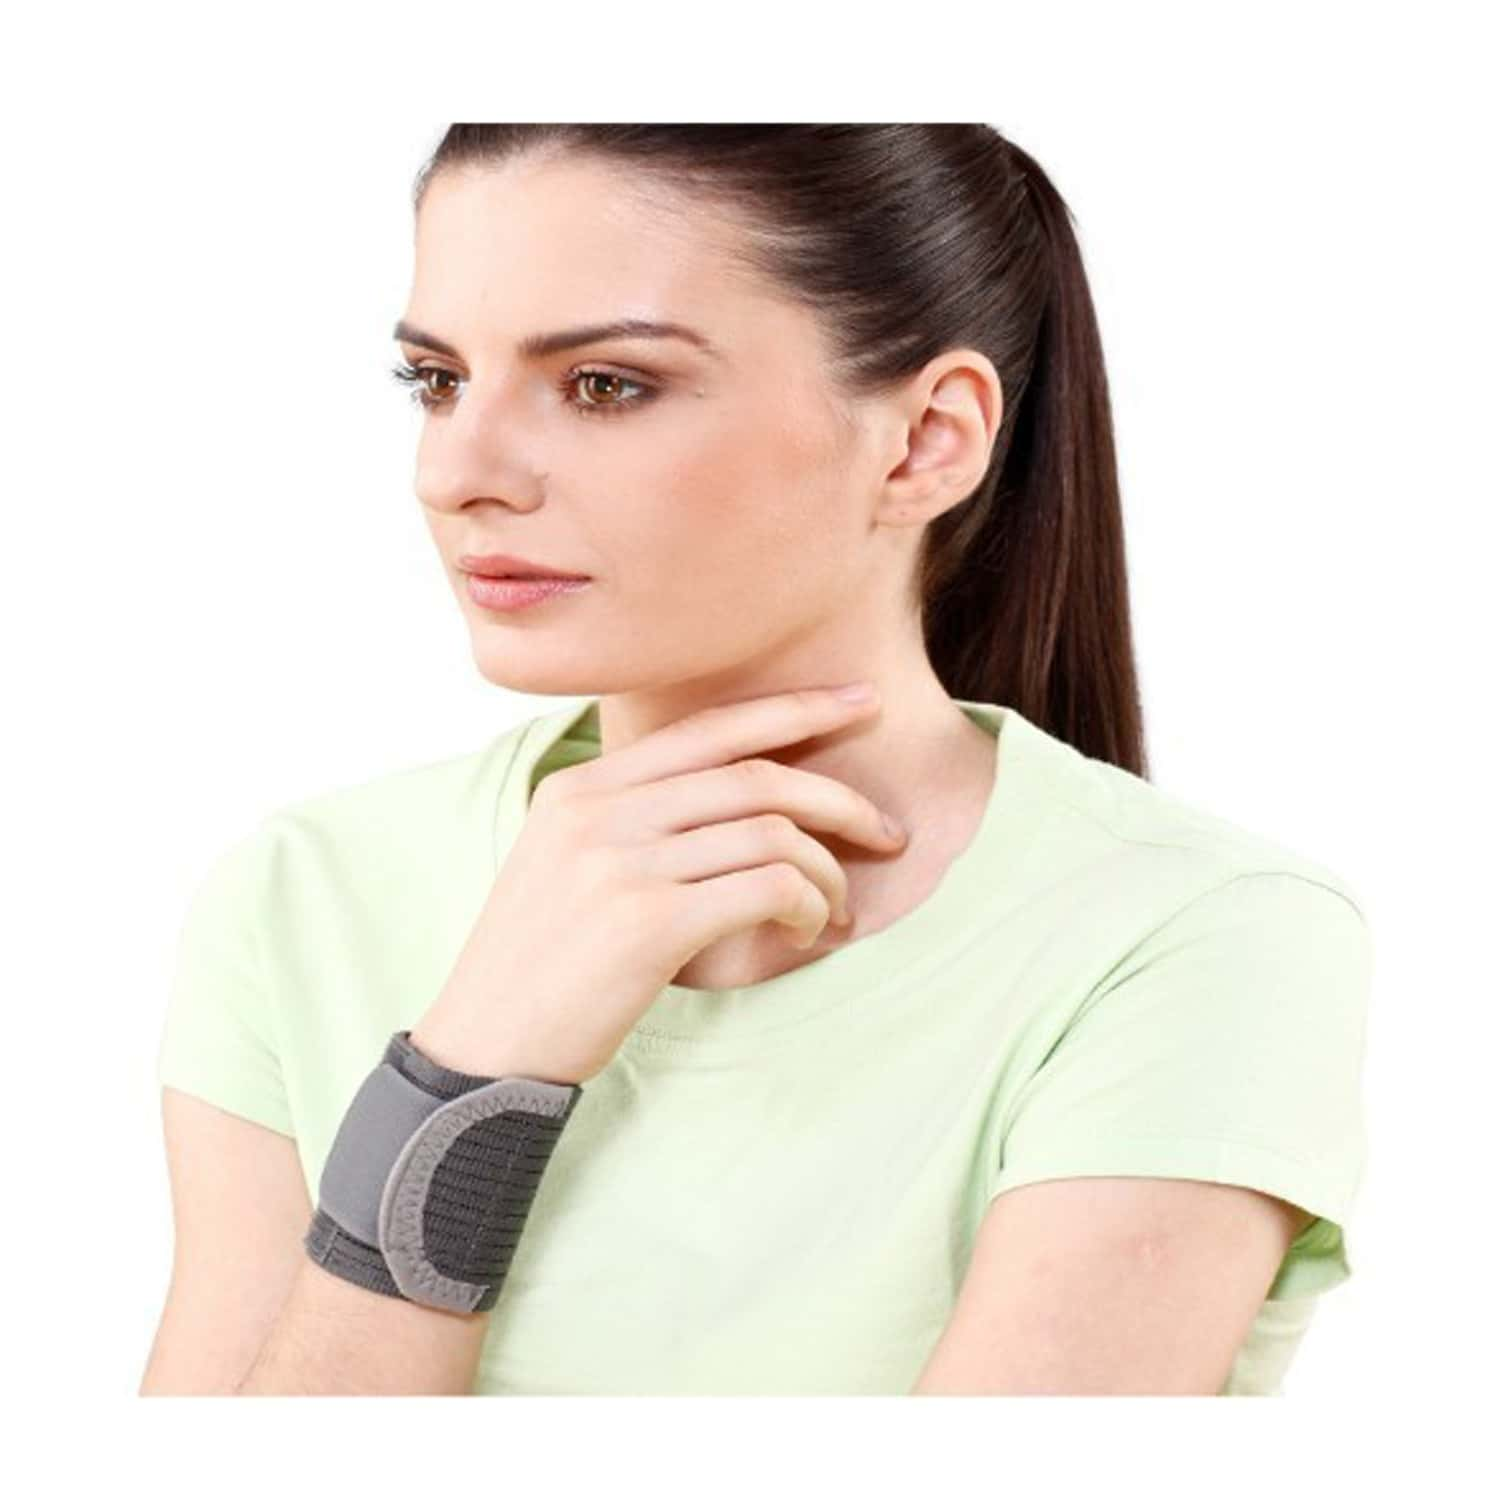 Tynor Wrist Brace With Double Lock ( Compression,immobilization,pain Relief) - Medium